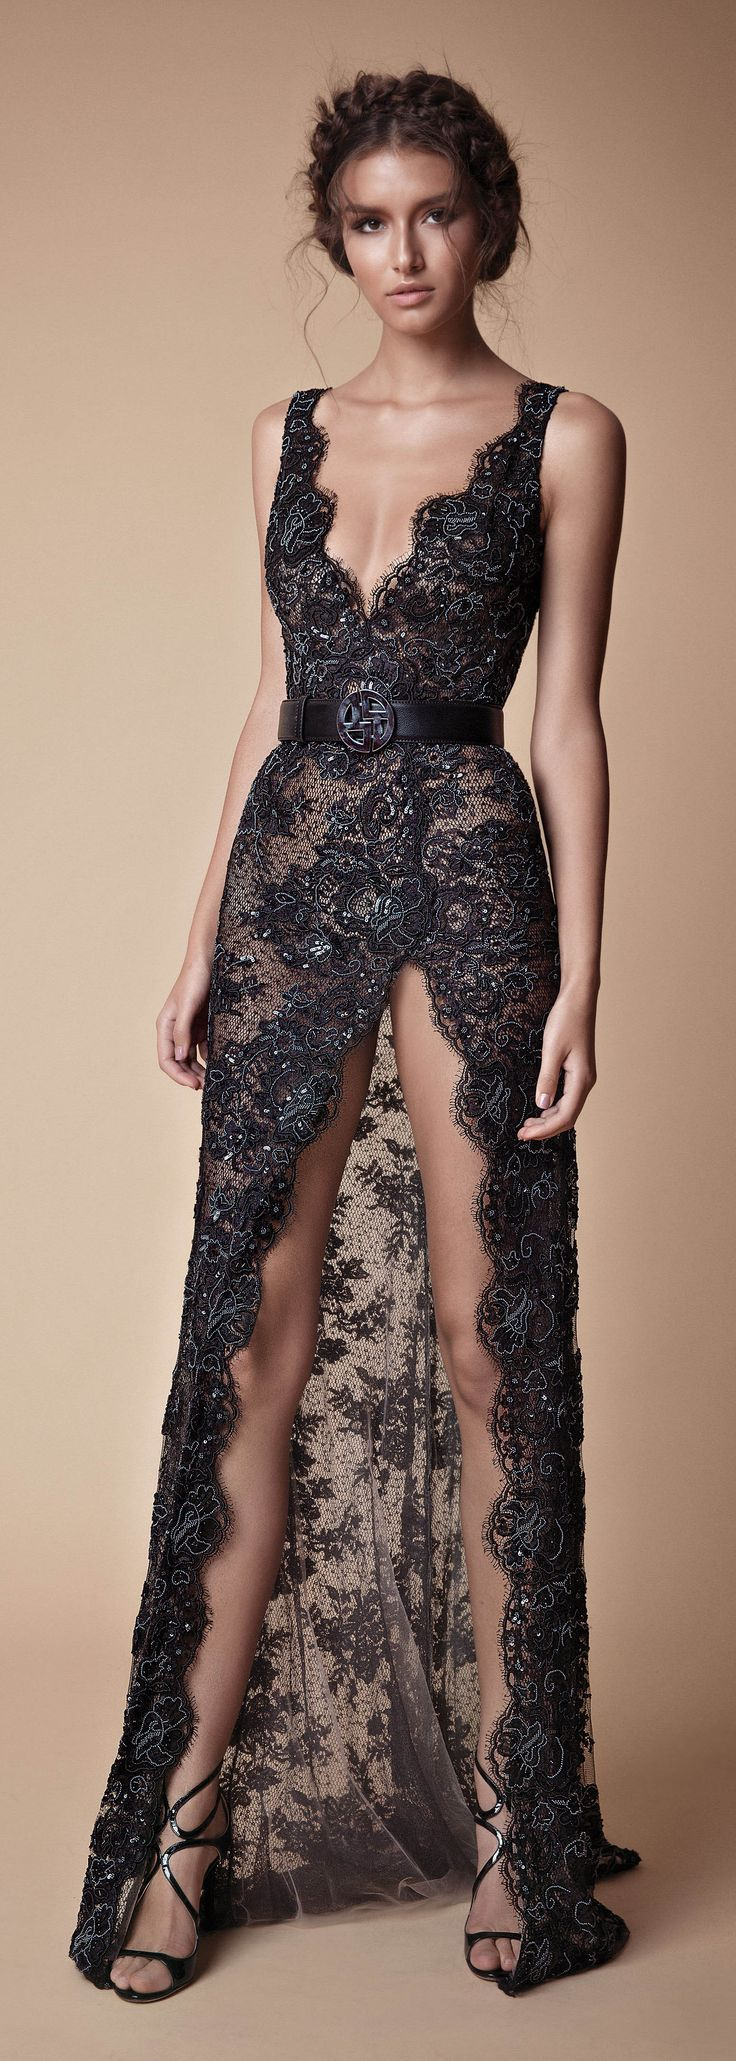 Sexy black lace evening gown by berta sexy dresses pinterest